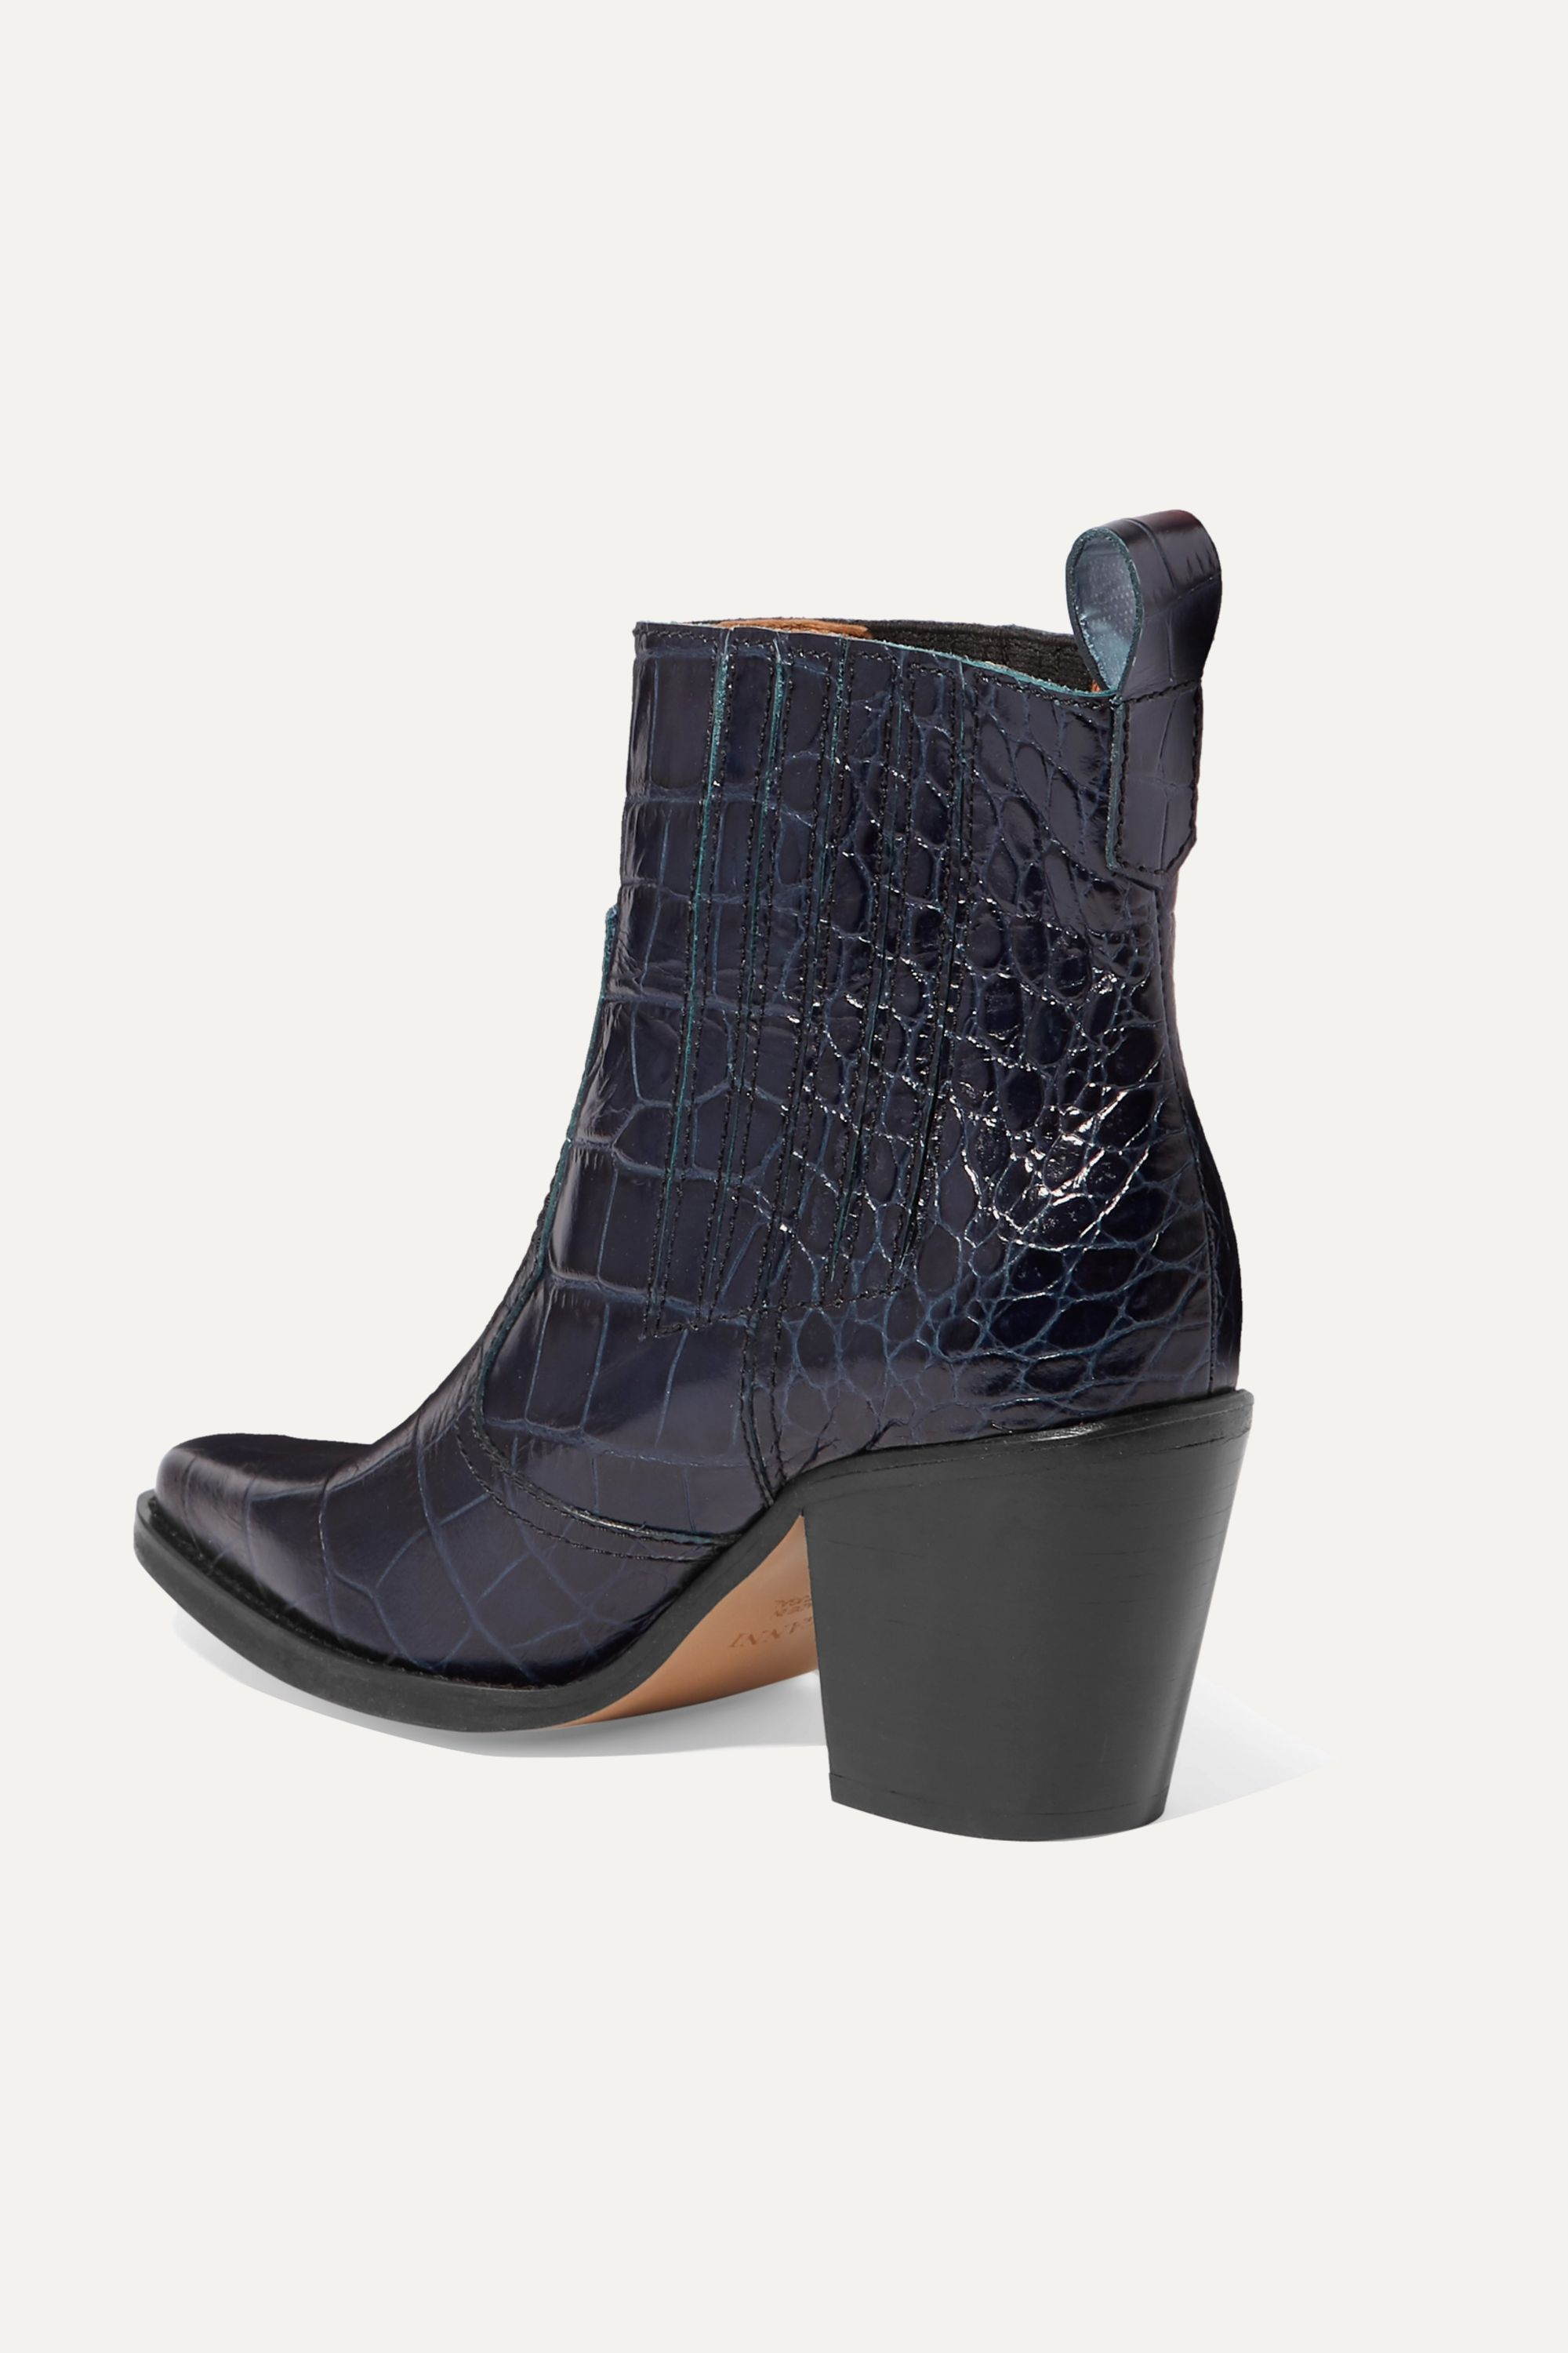 Navy Callie croc effect leather ankle